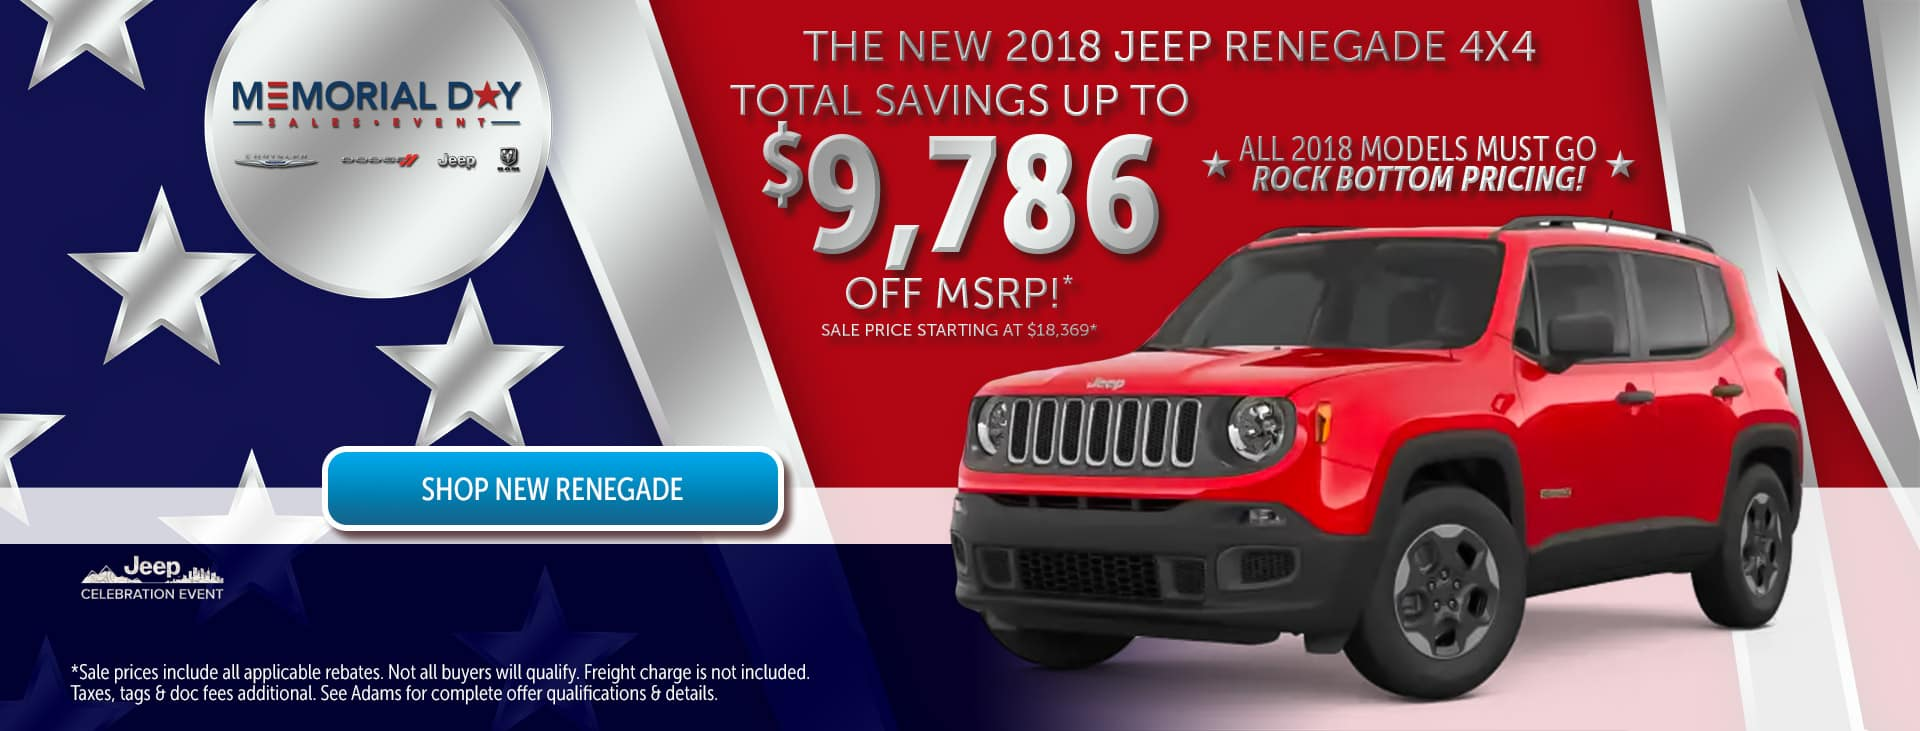 Memorial Day Sales Event in Annapolis